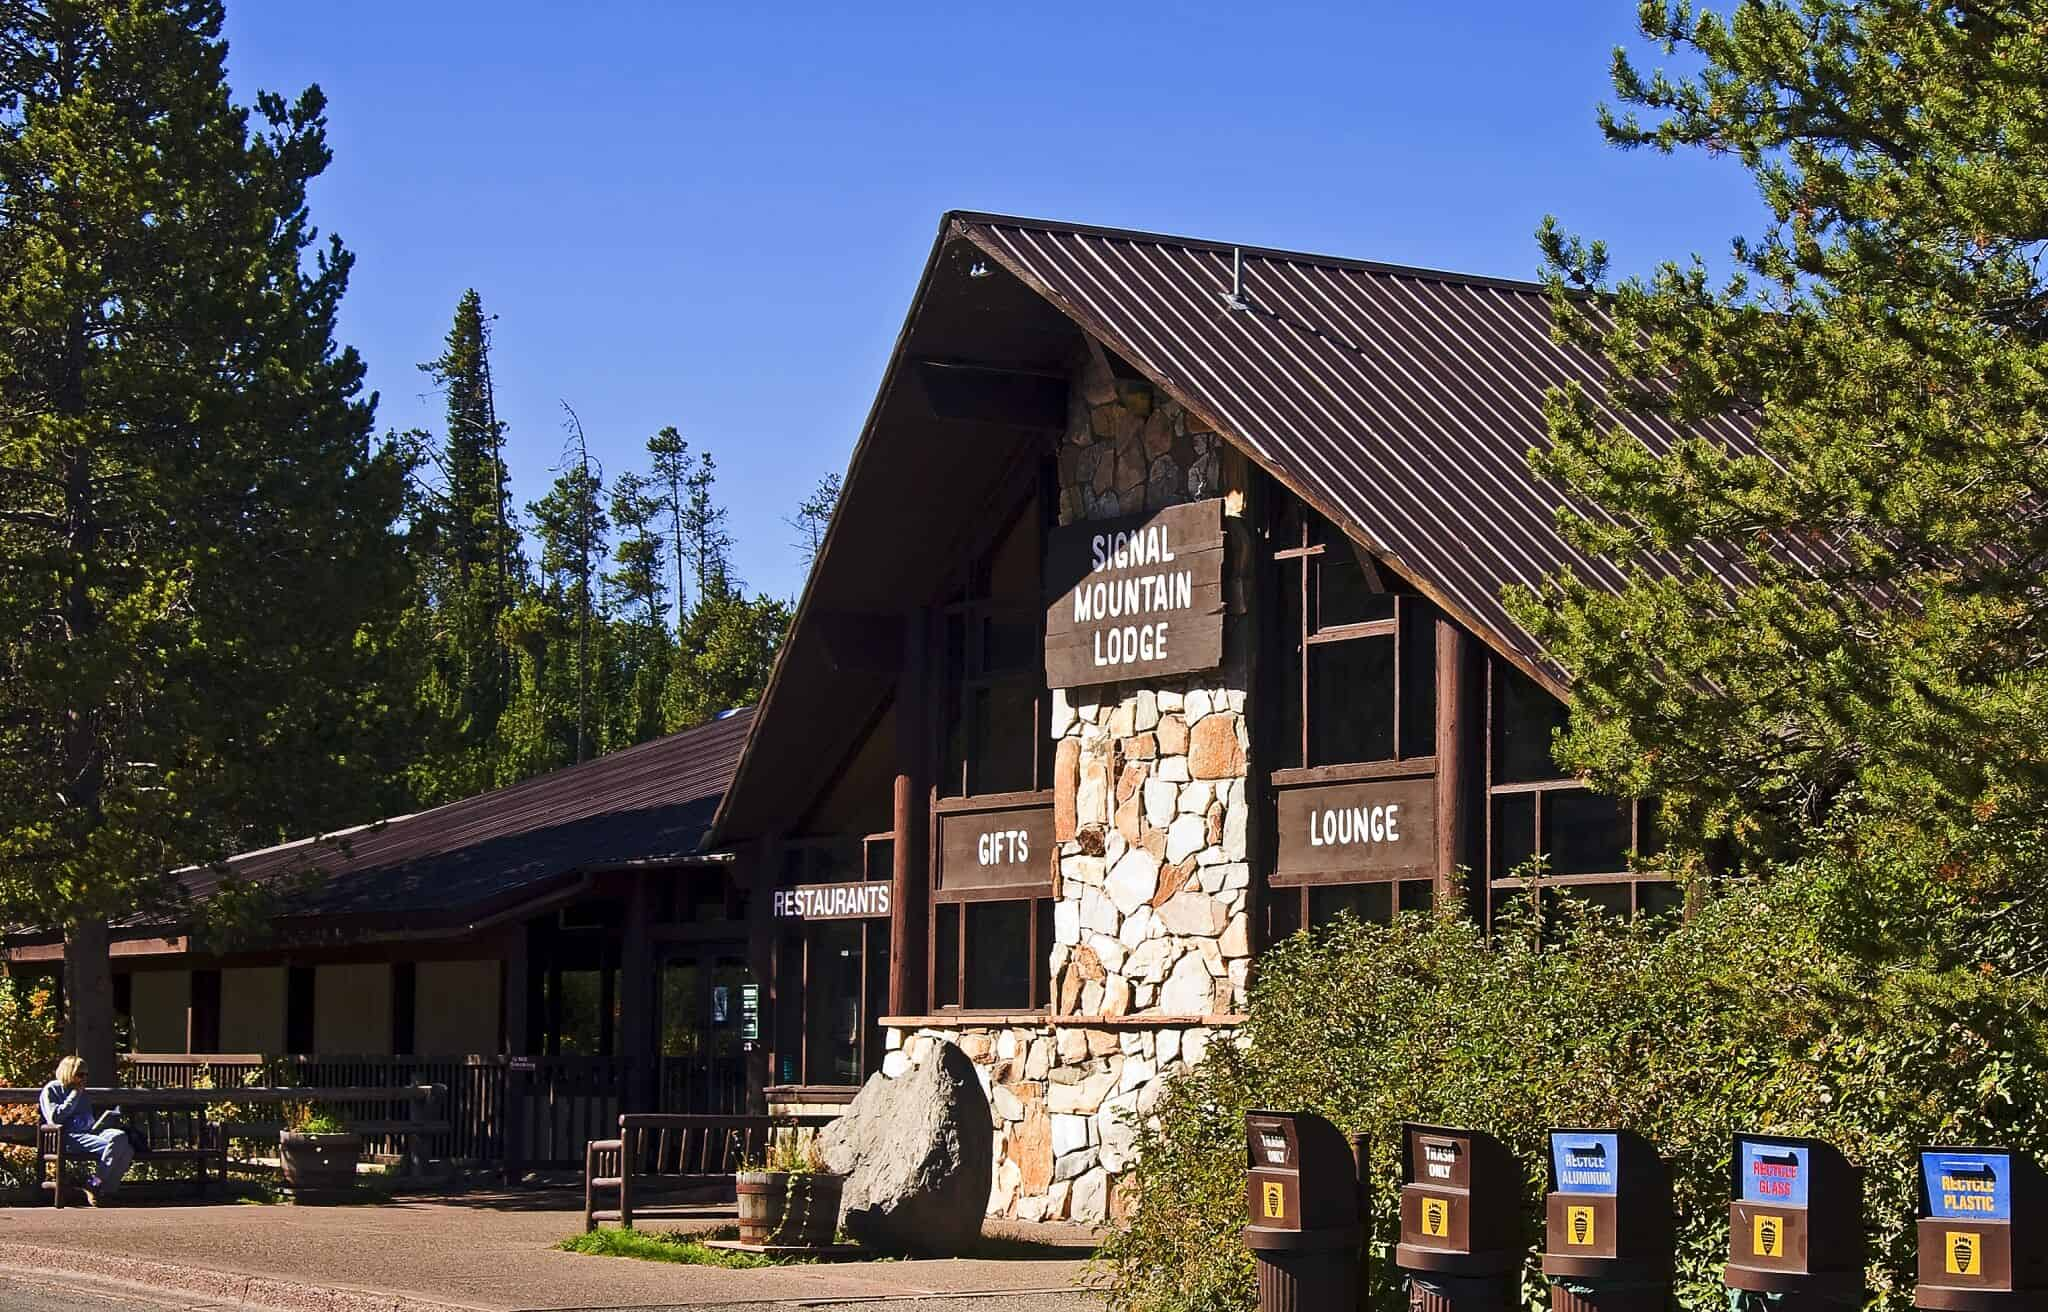 Jackson Lake Lodge has a authentic western lodge style but inside it is very grand.